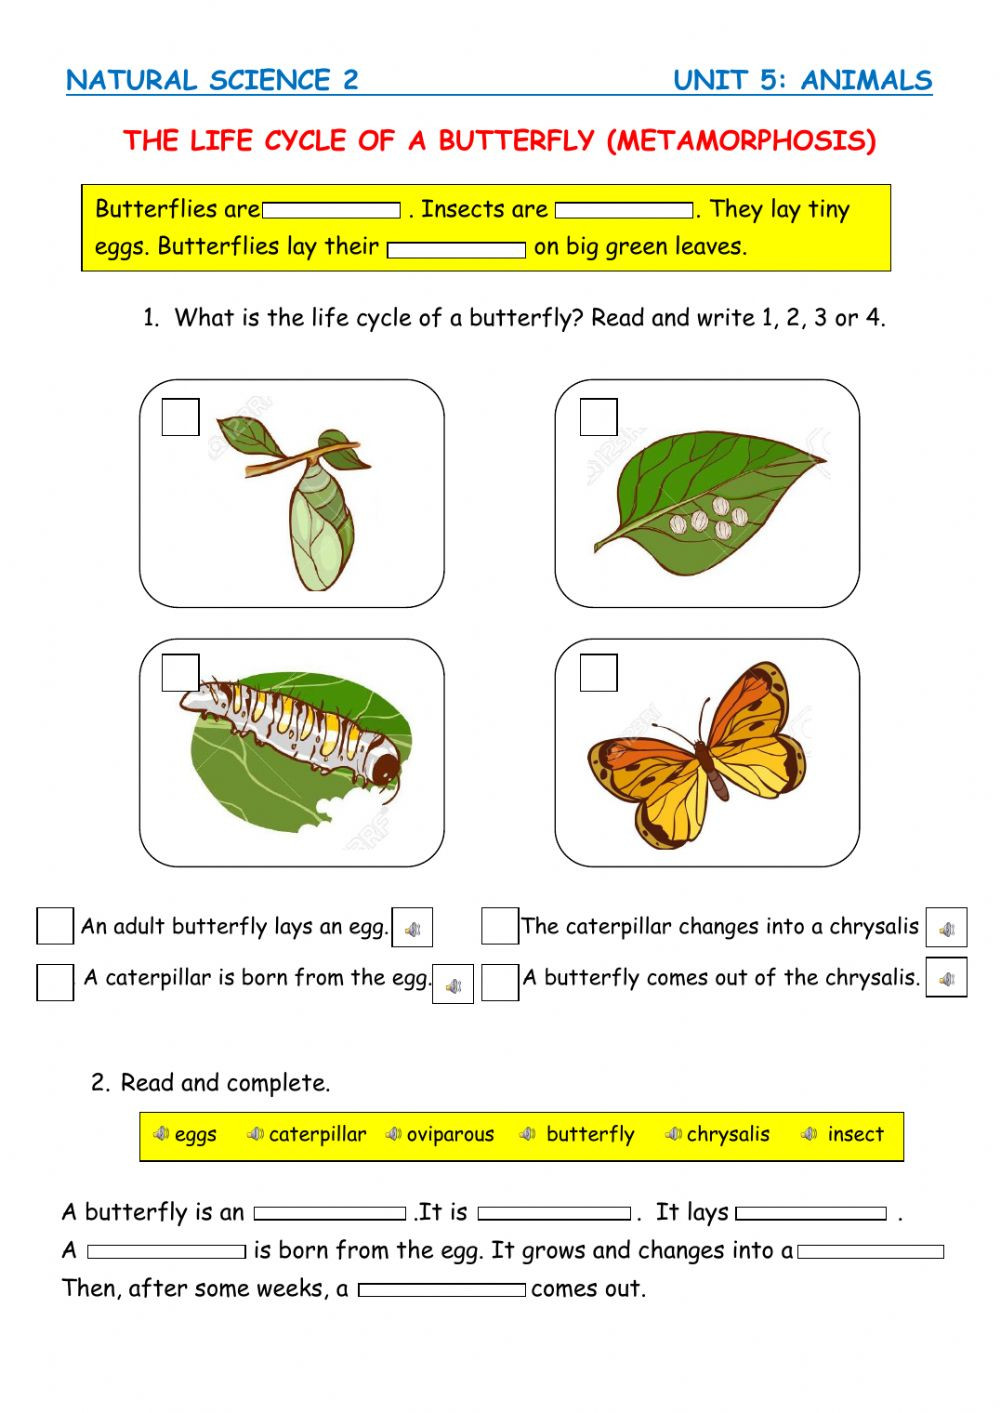 Butterfly Life Cycle Worksheet 2 the Life Cycle Of A butterfly Interactive Worksheet